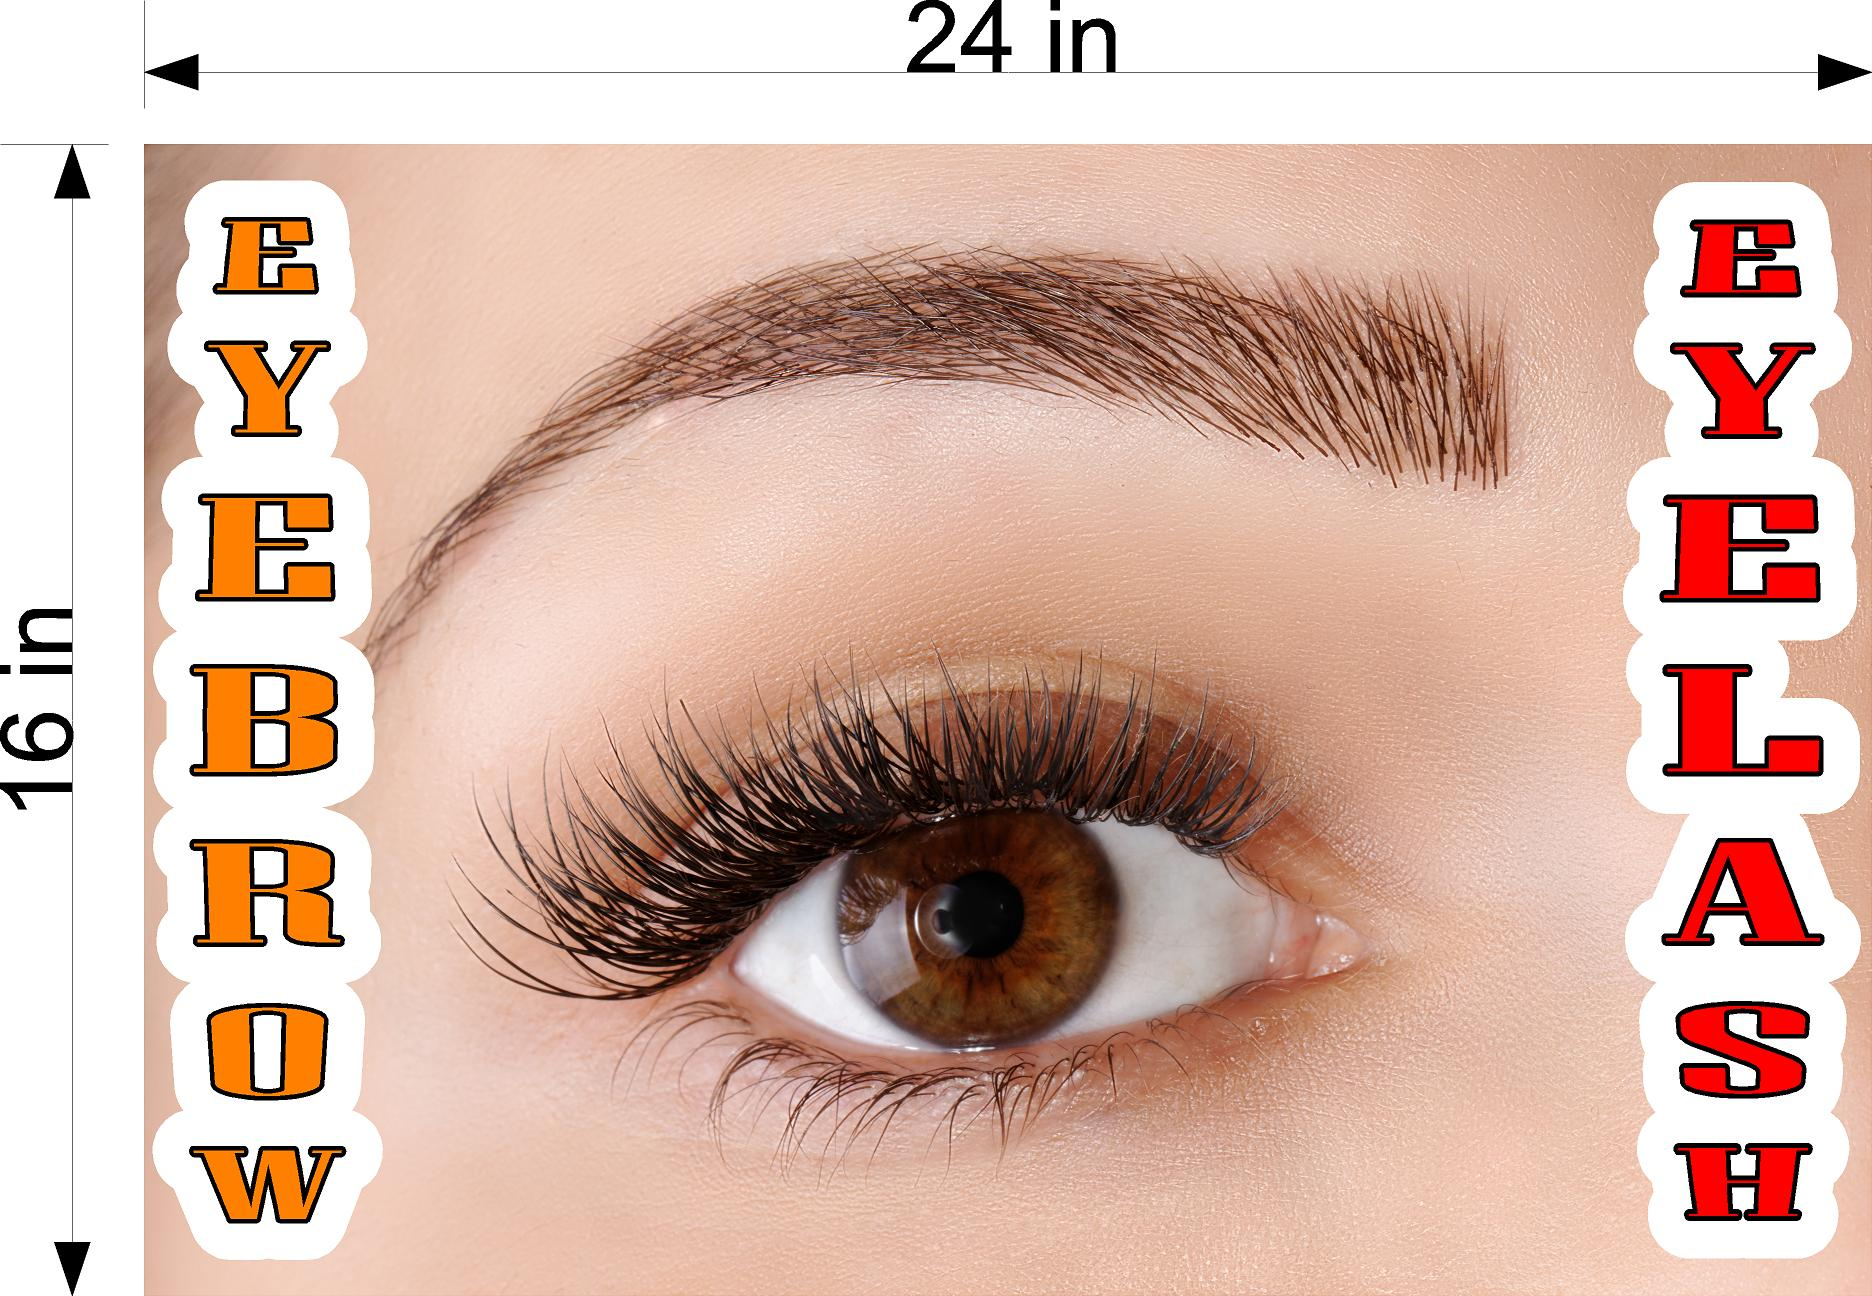 Eyebrows 15 Perforated Mesh One Way Vision See-Through Window Vinyl Salon Sign Eyelash Horizontal